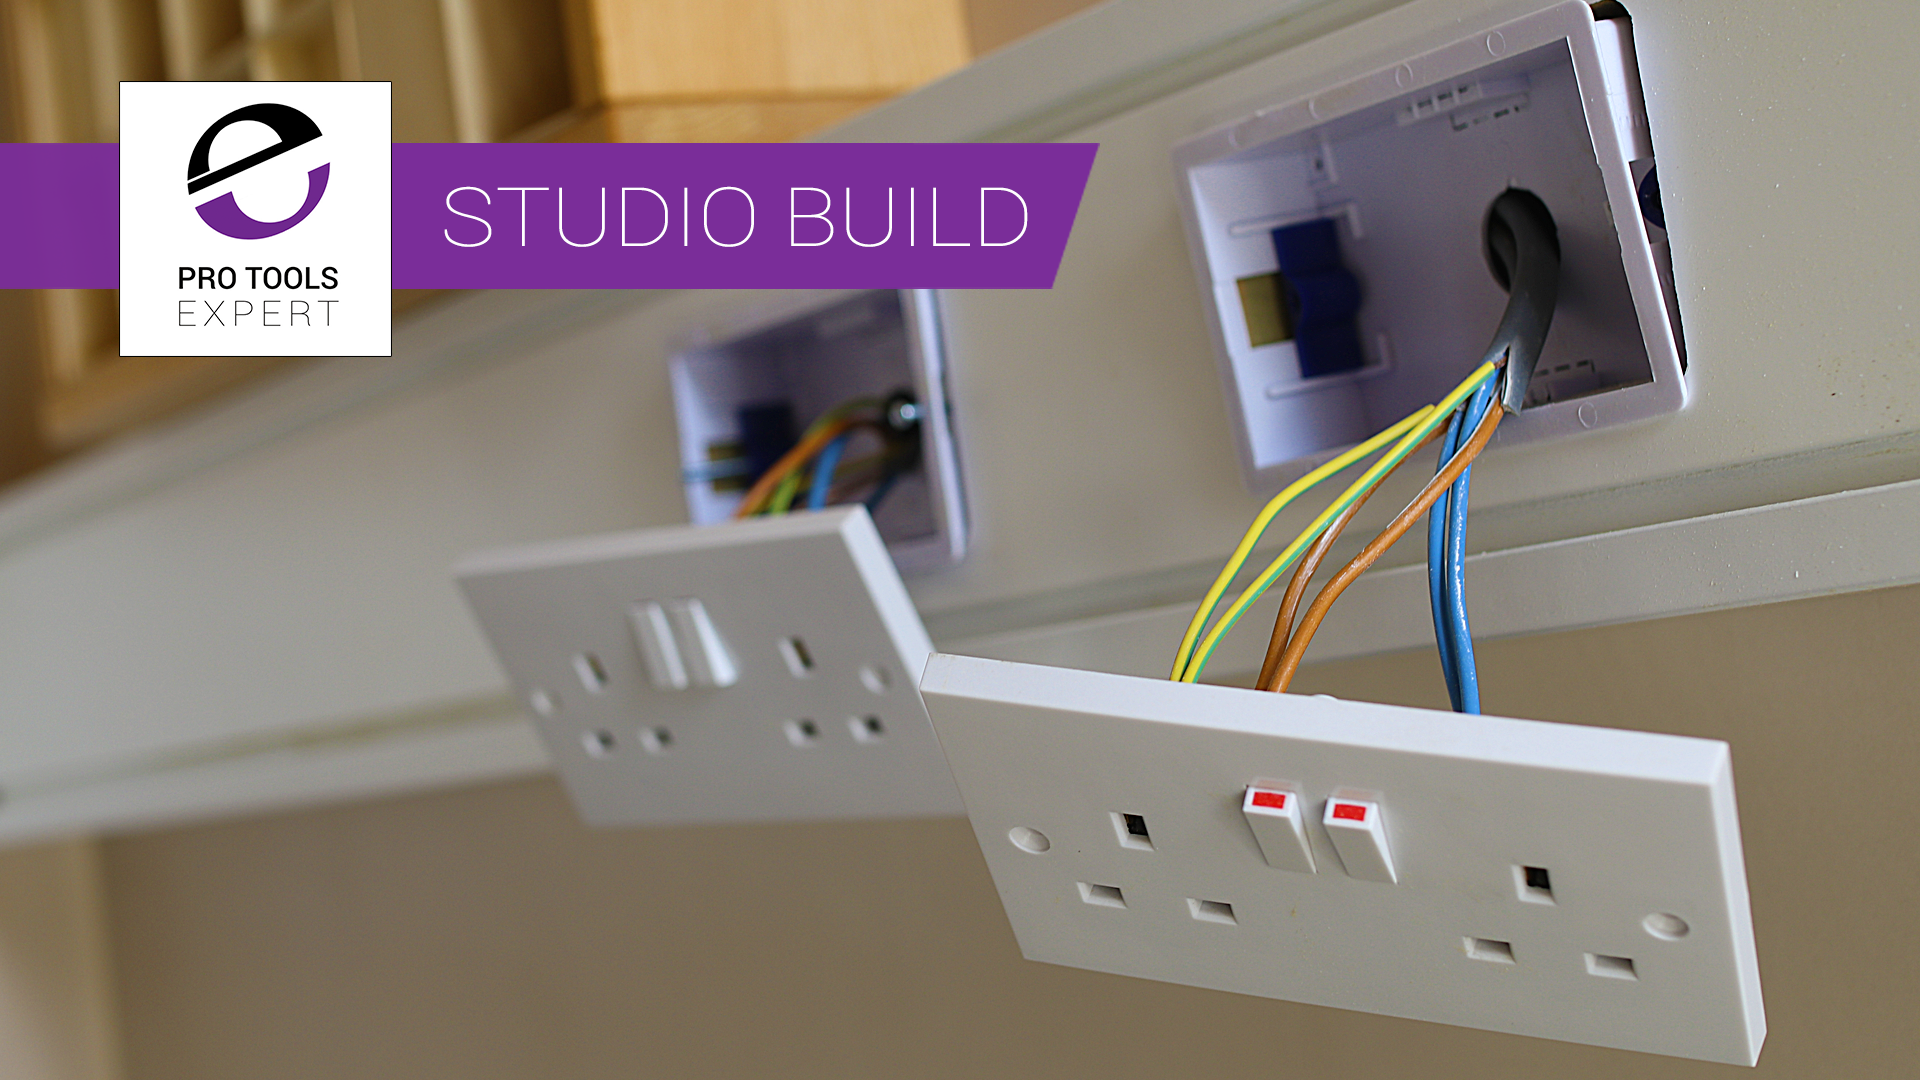 Studio Build Future Proofing Recording Studio Electrics With Trunking Systems Pro Tools